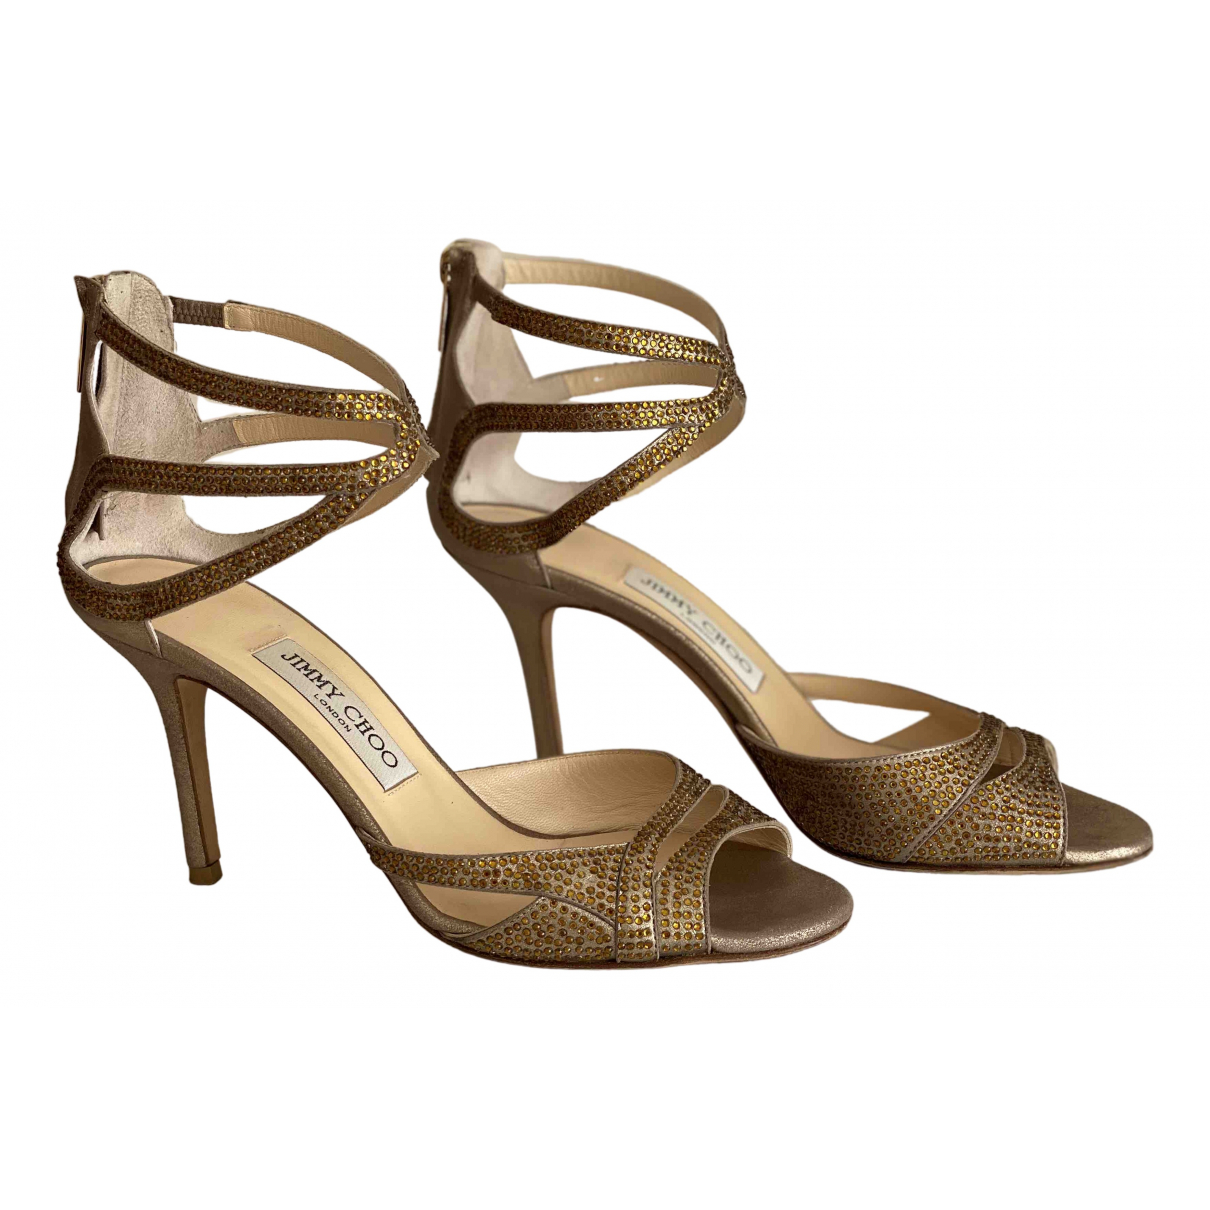 Jimmy Choo \N Gold Leather Sandals for Women 38.5 IT